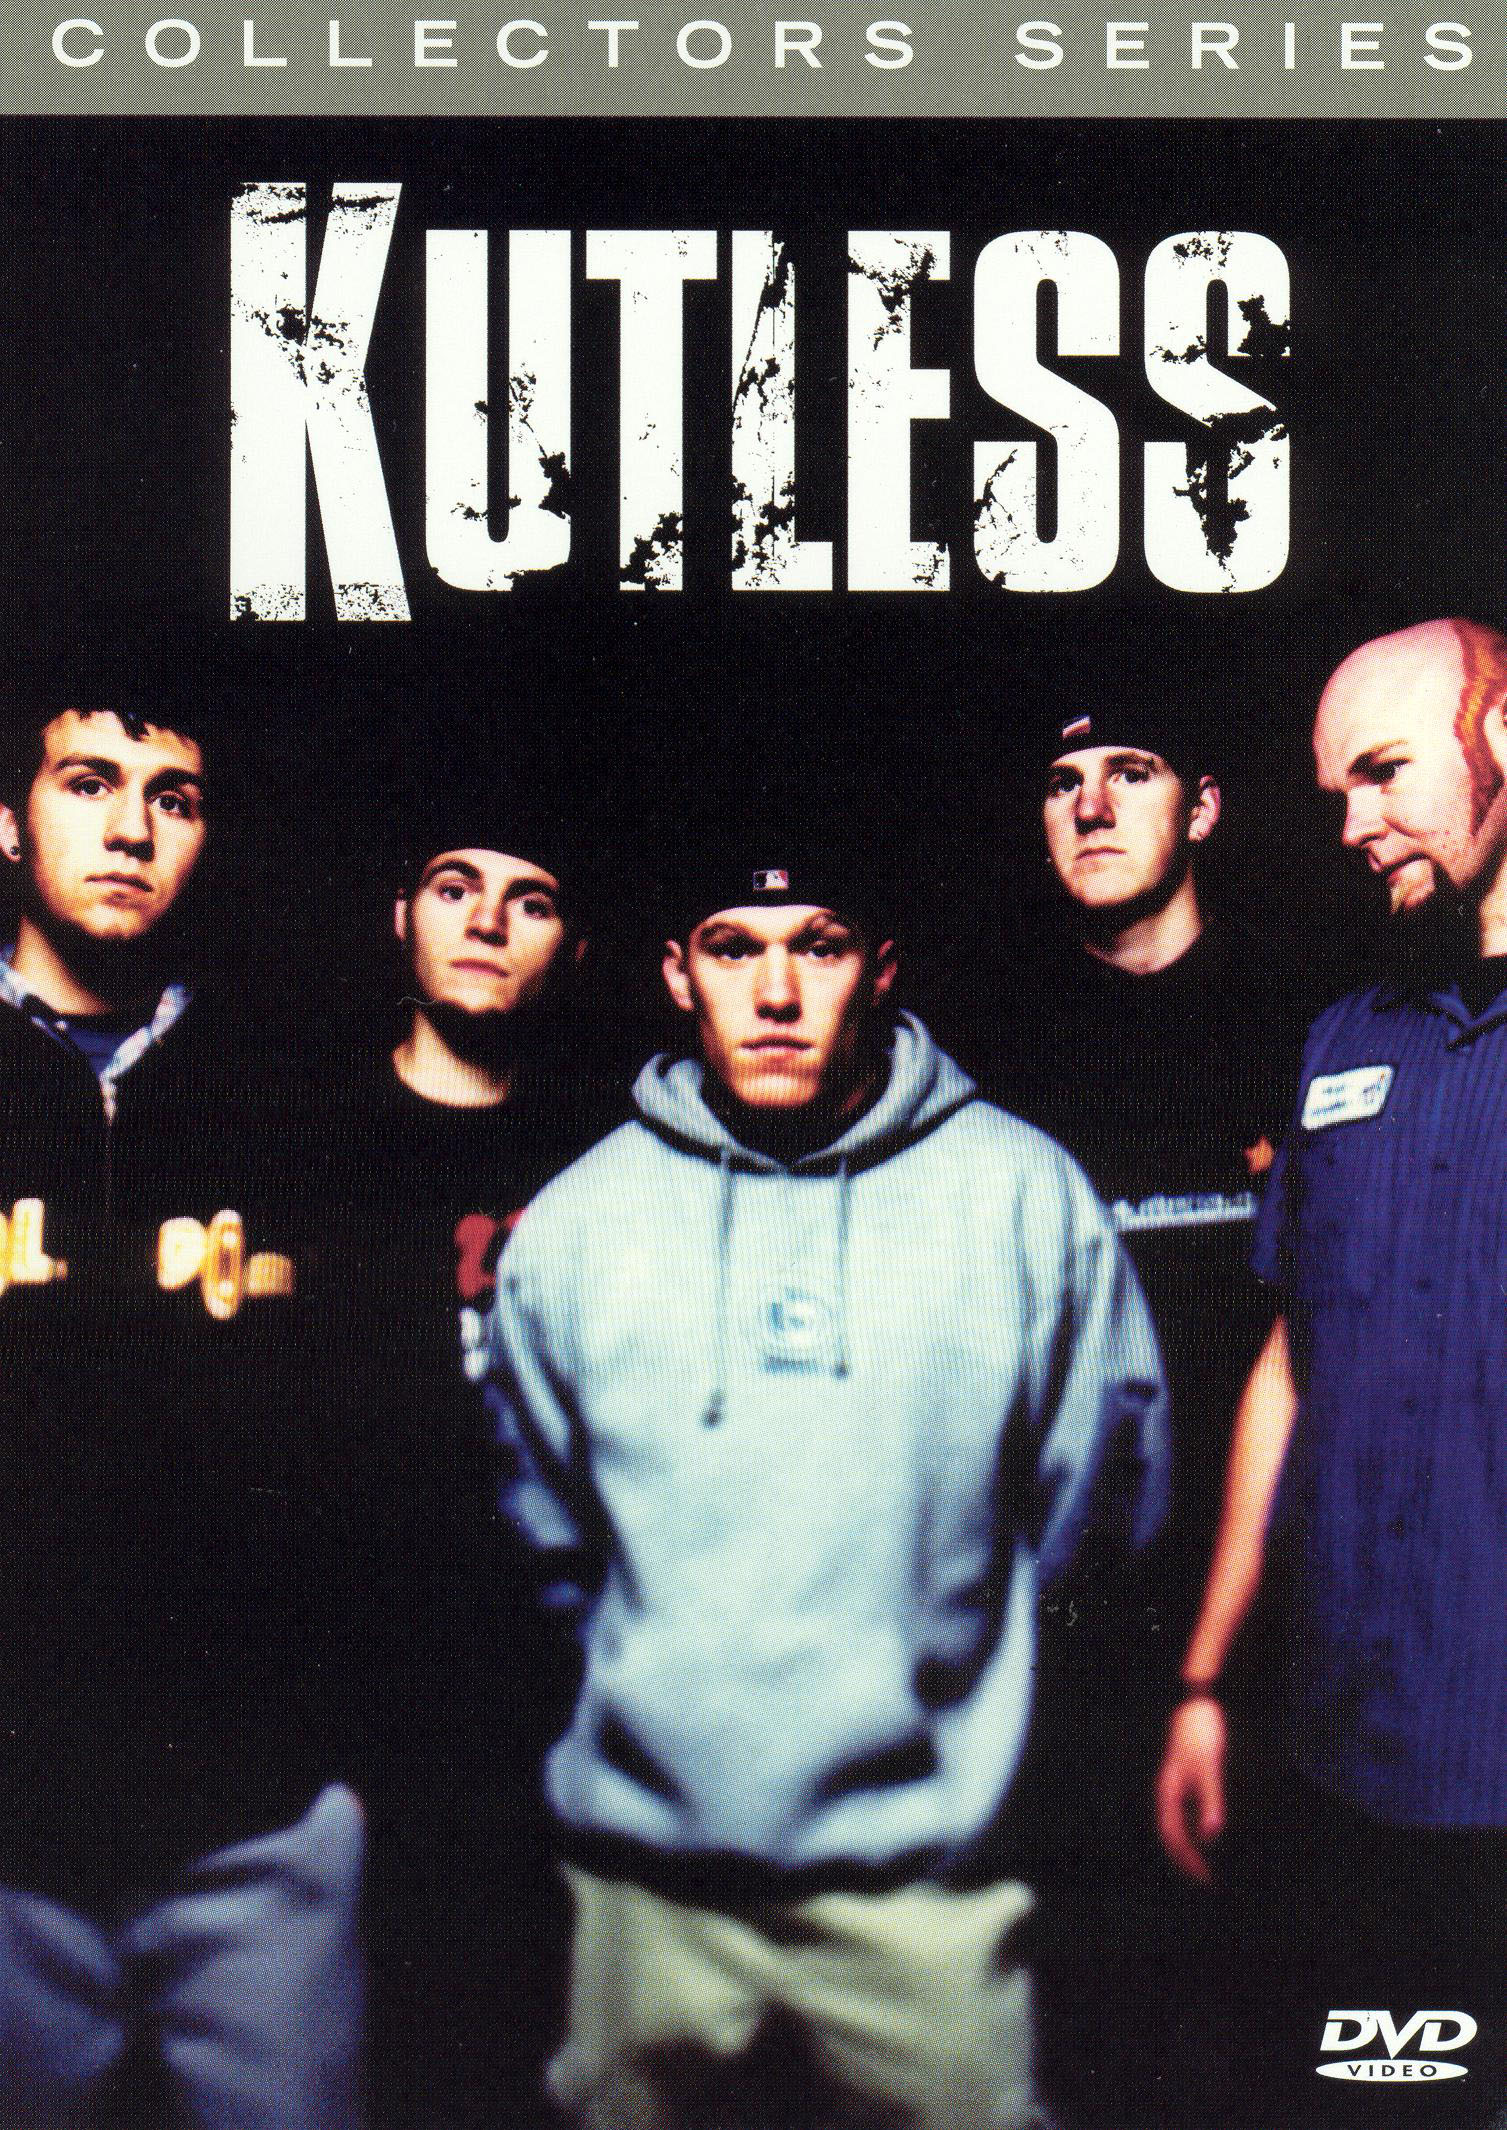 Collectors Series: Kutless